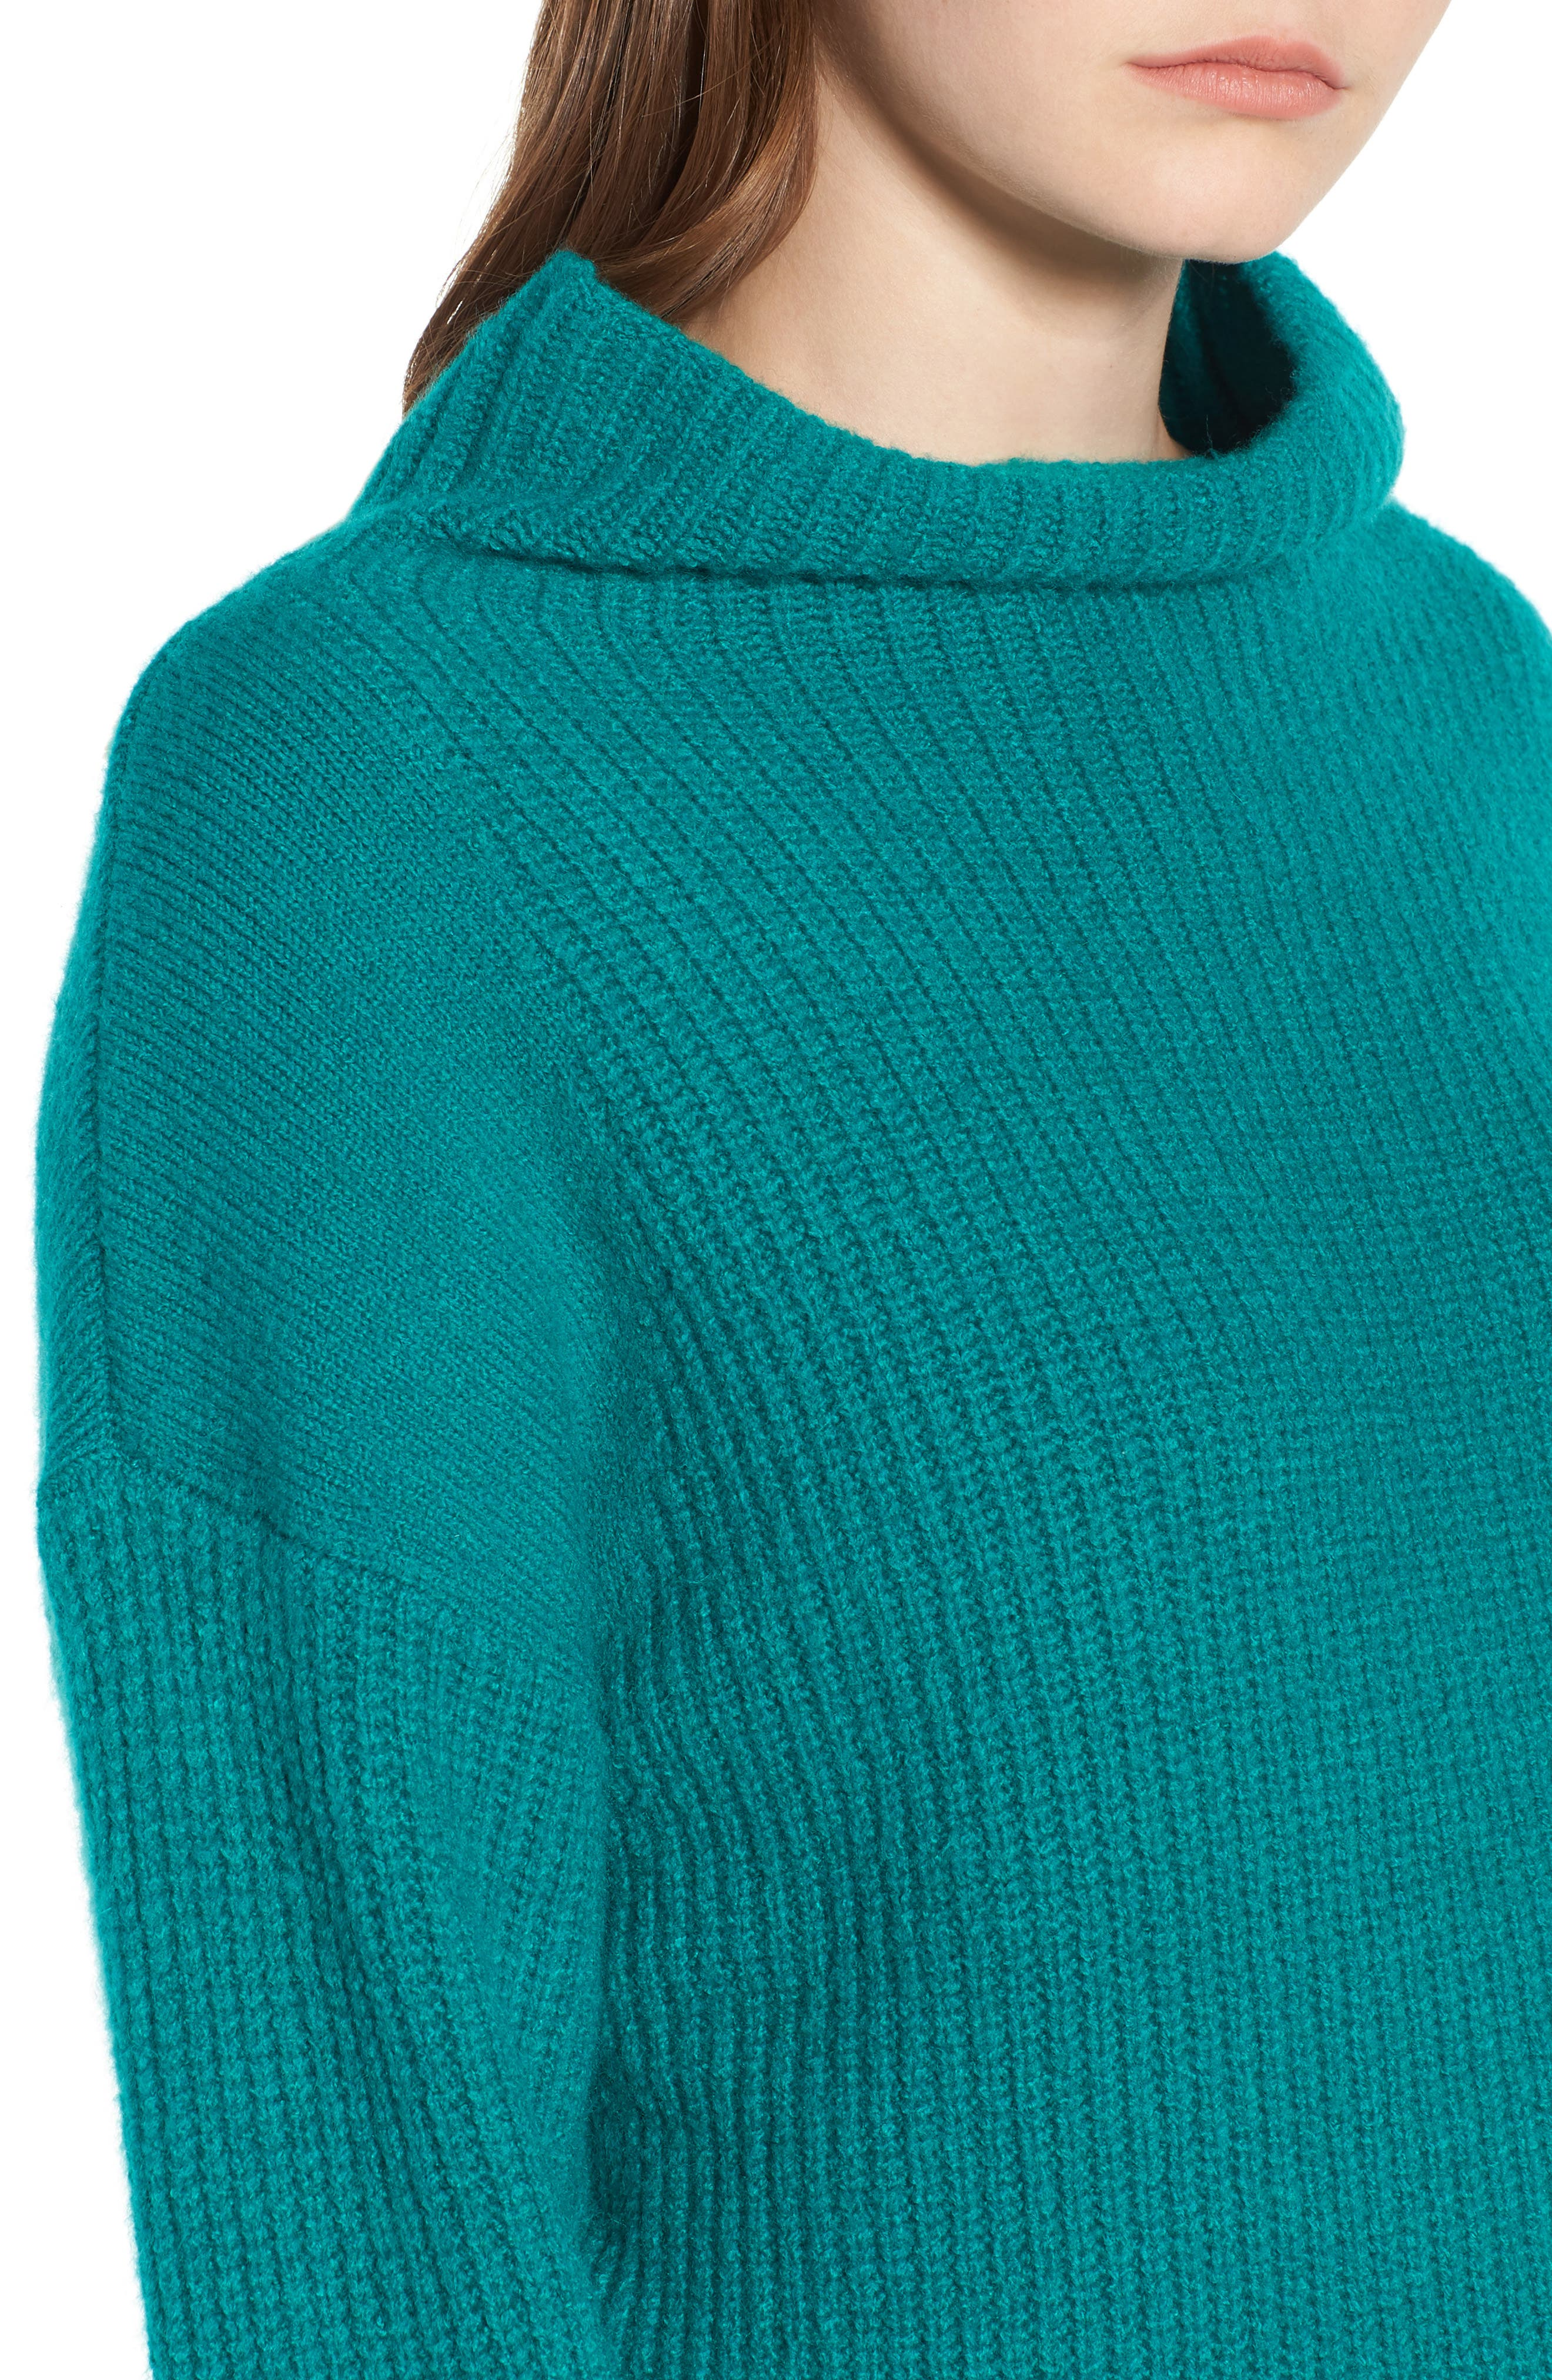 Rib Funnel Neck Sweater,                             Alternate thumbnail 4, color,                             Teal Sail